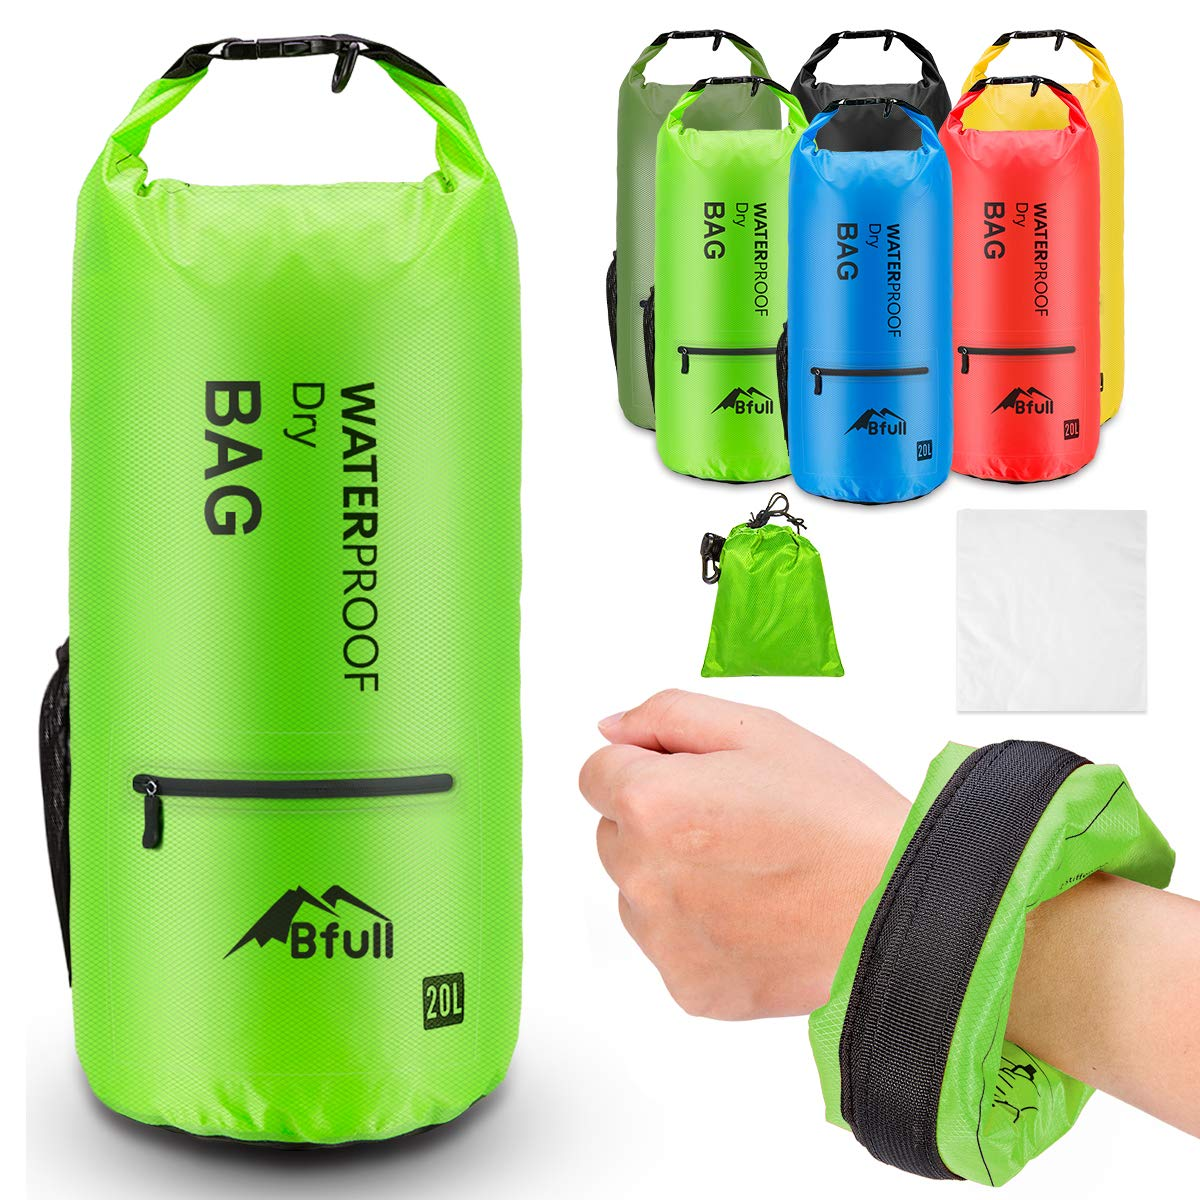 BFULL Waterproof Dry Bag 5L/10L/20L/30L/40L [Lightweight Compact] Roll Top Water Proof Backpack with 2 Exterior Zip Pocket for Kayaking, Boating, Duffle, Camping, Floating, Rafting, Fishing (Green) by BFULL